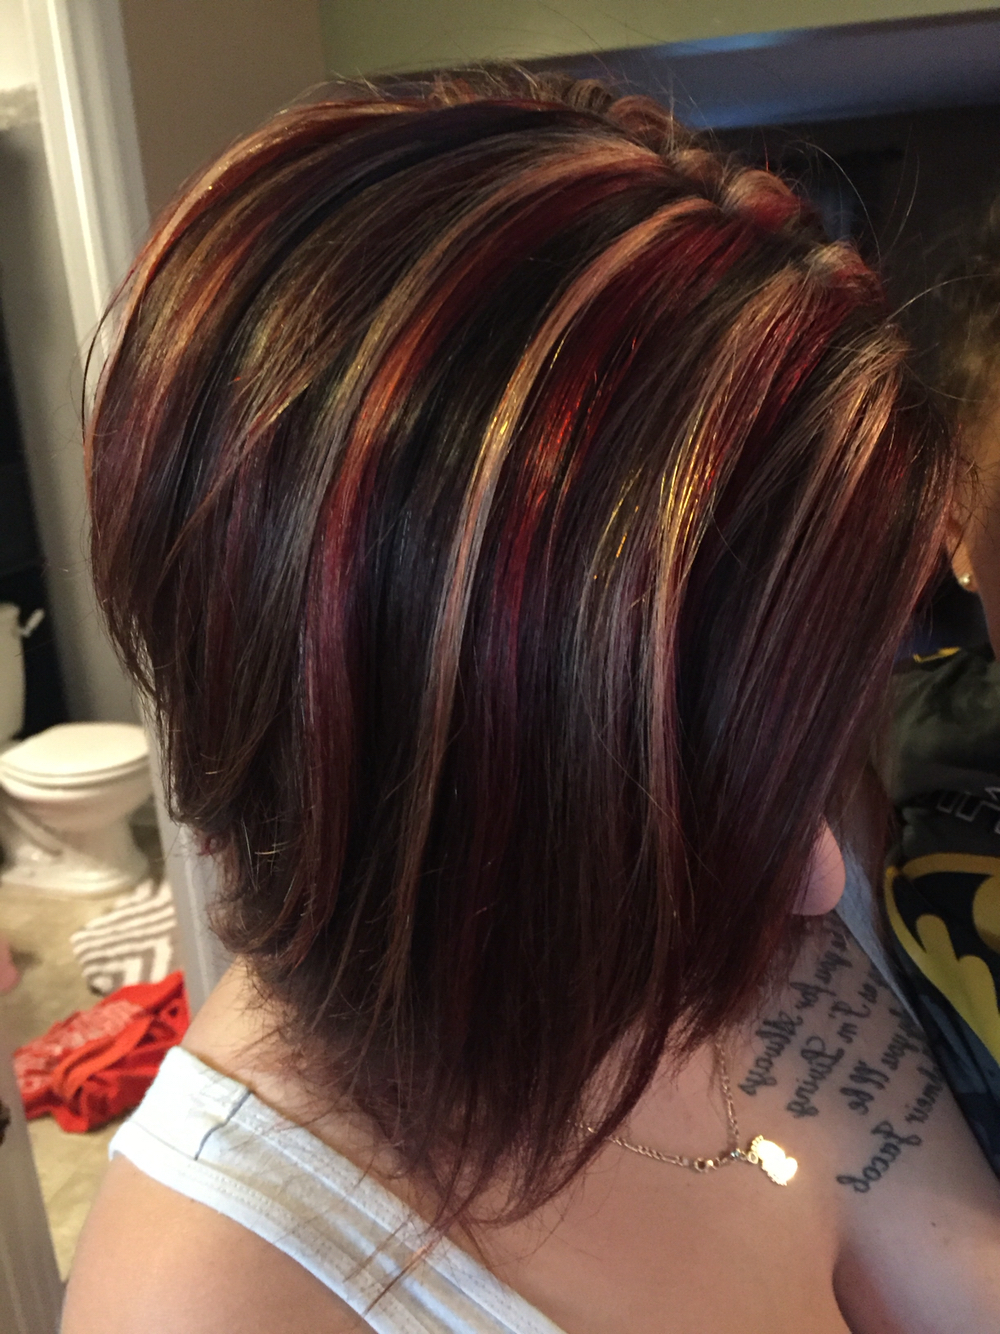 Black Hair With Red Chunky Highlights Regarding Short Haircuts With Red And Blonde Highlights (View 14 of 25)